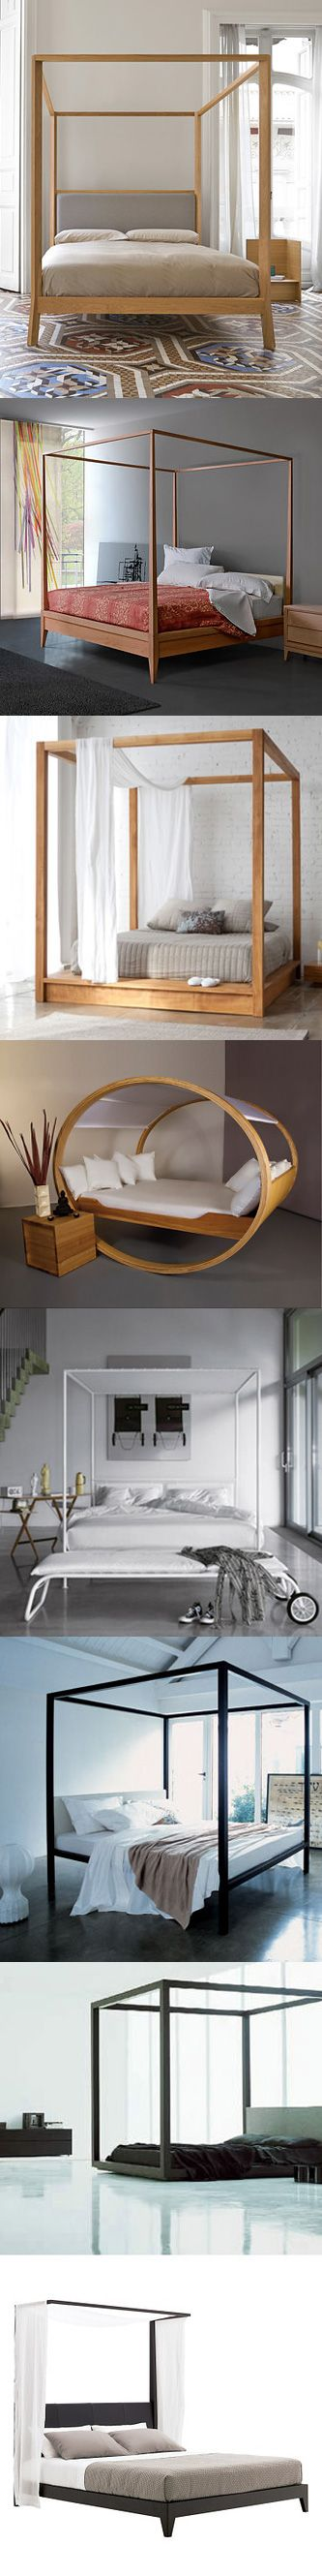 25+ best ideas about Modern Canopy Bed on Pinterest | Canopy ... - 10 MODERN CANOPY BEDS Who said that modern isn't romantic?